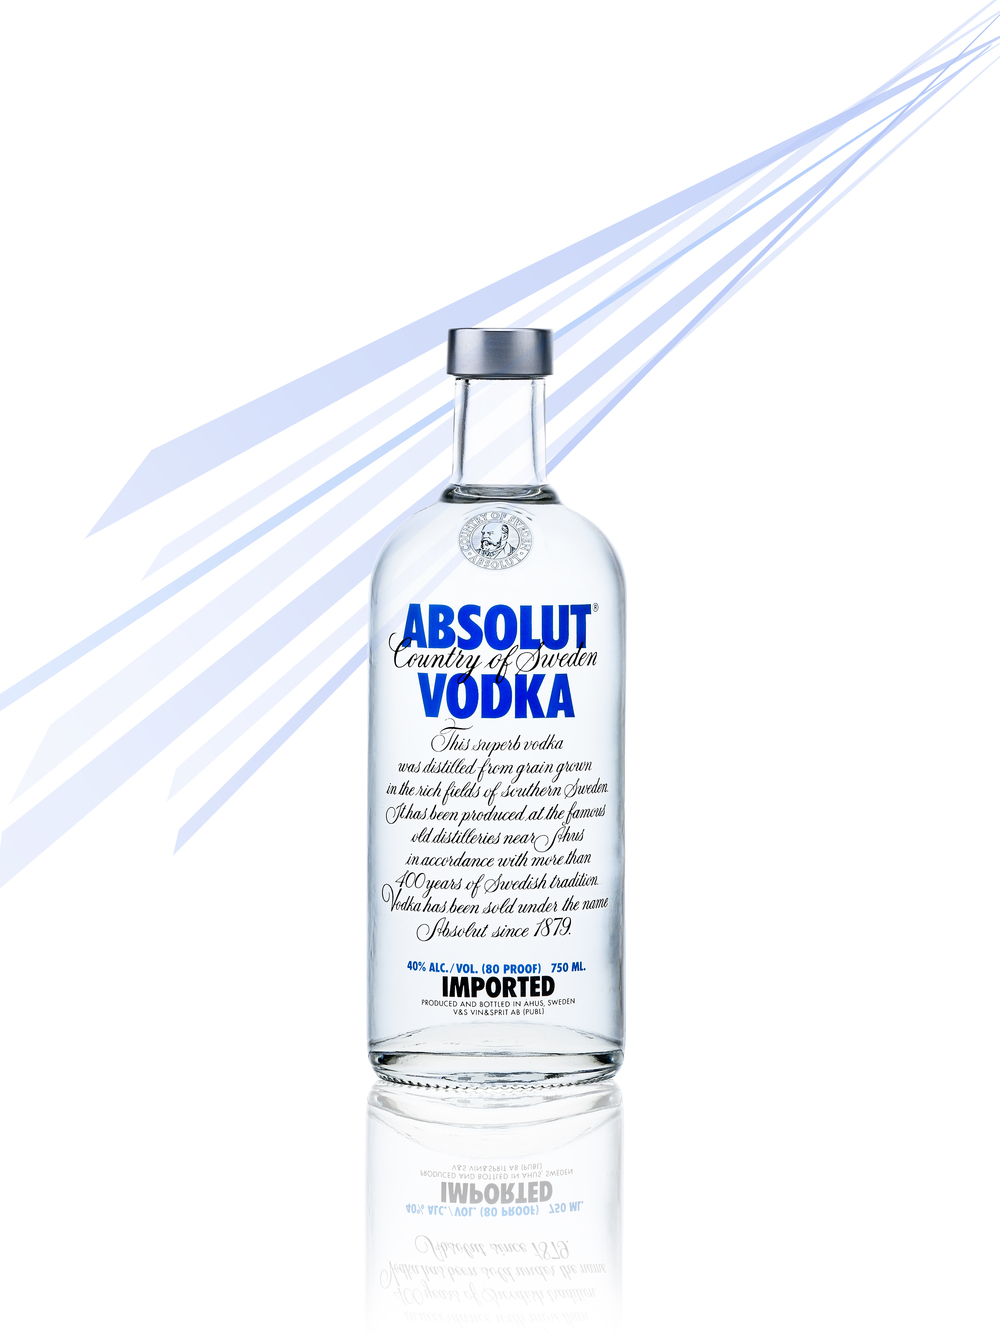 absolutvodka-0157-Edit.jpg